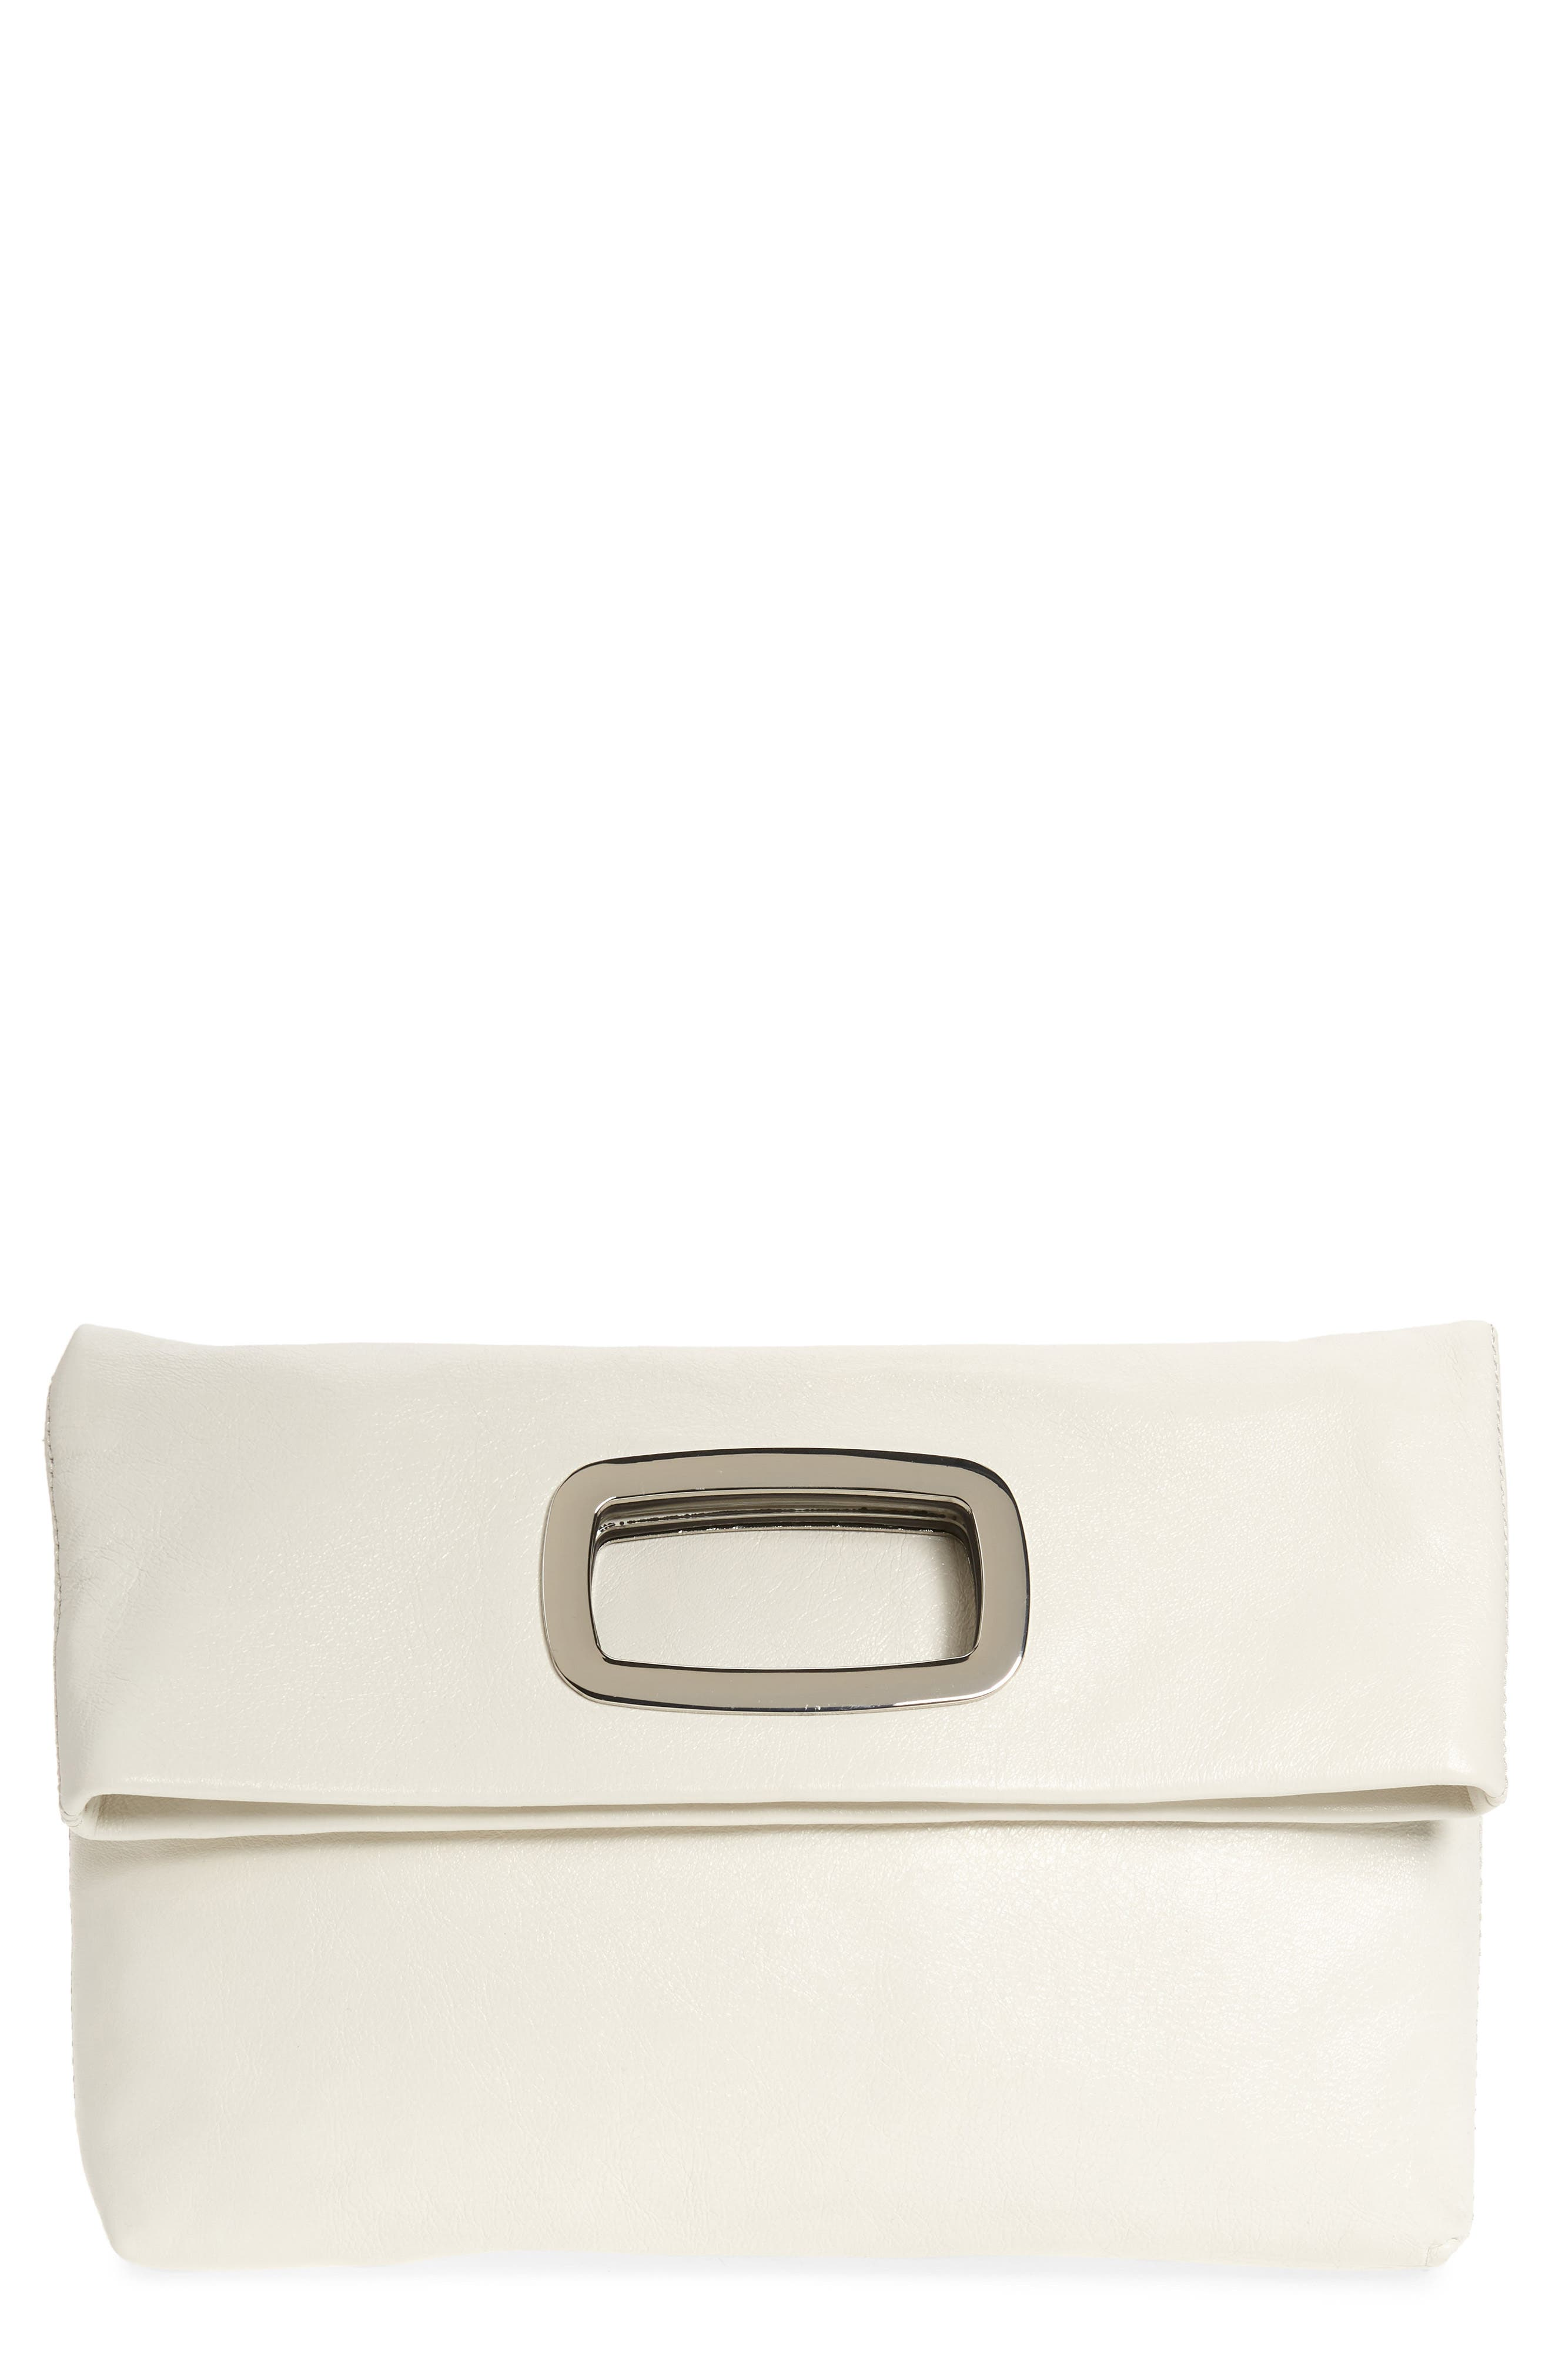 Large Marti Leather Convertible Clutch,                             Main thumbnail 1, color,                             SNOW WHITE